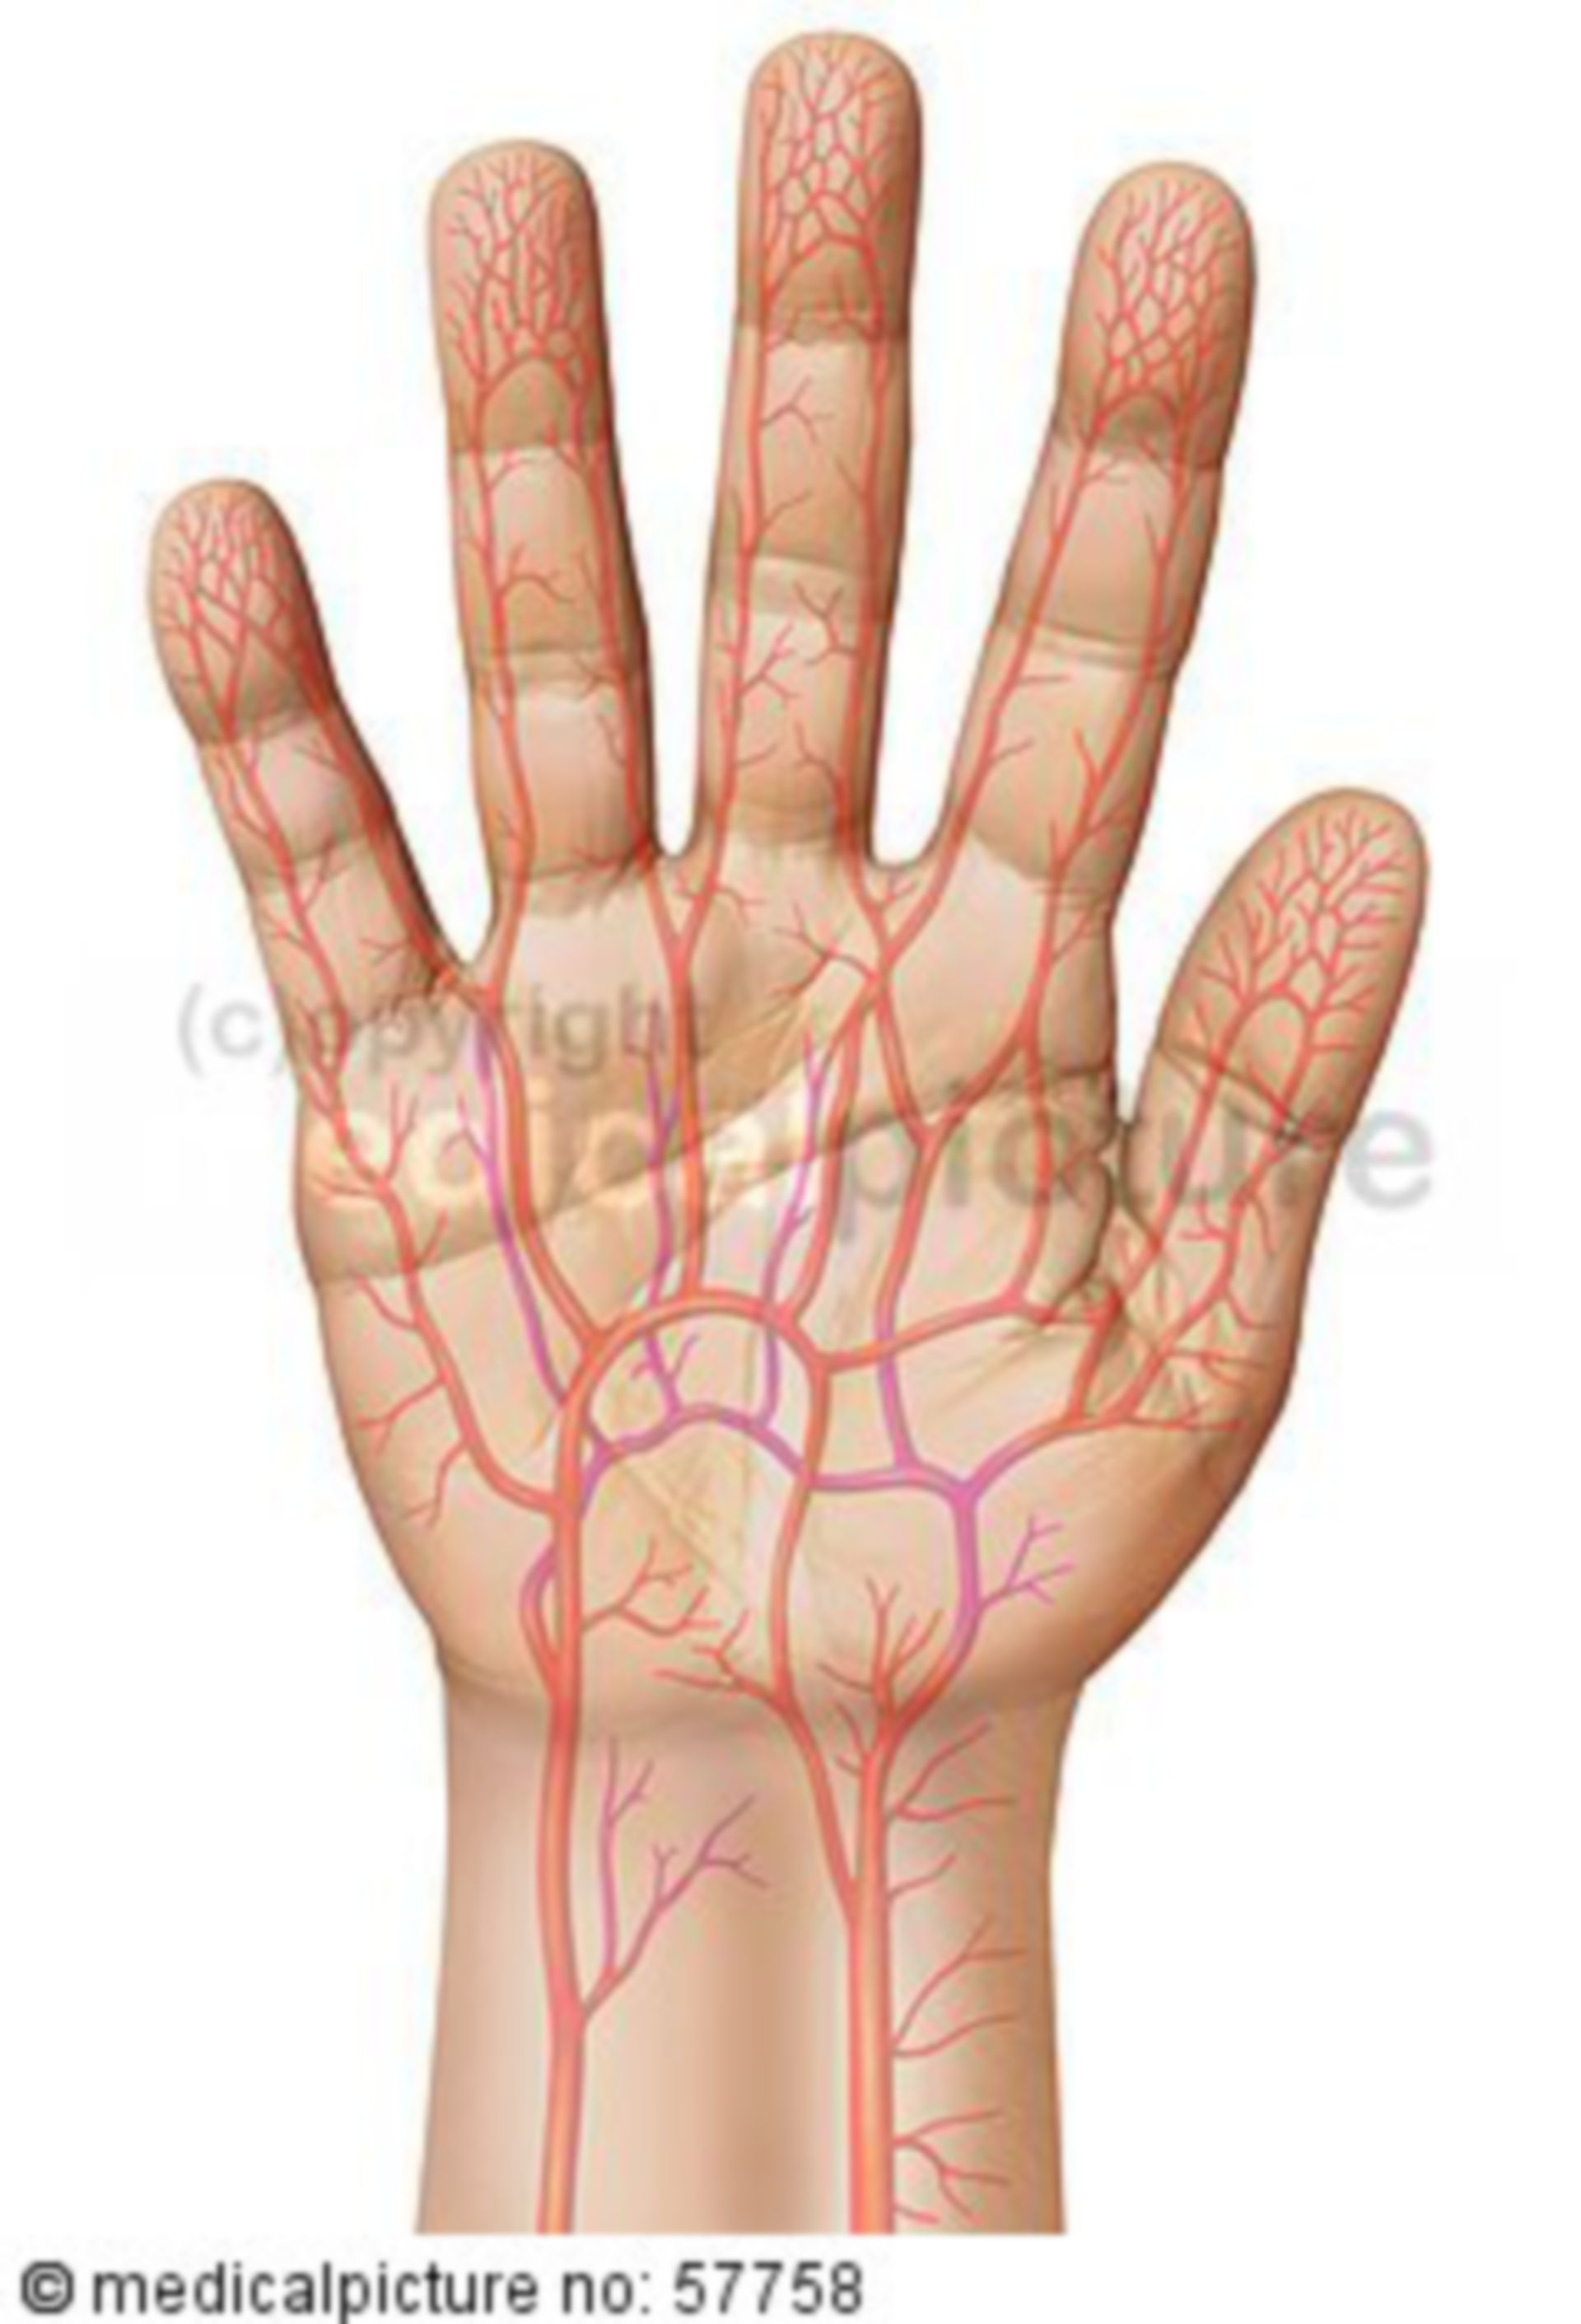 Anatomical illustrations - arterial supply of the hand